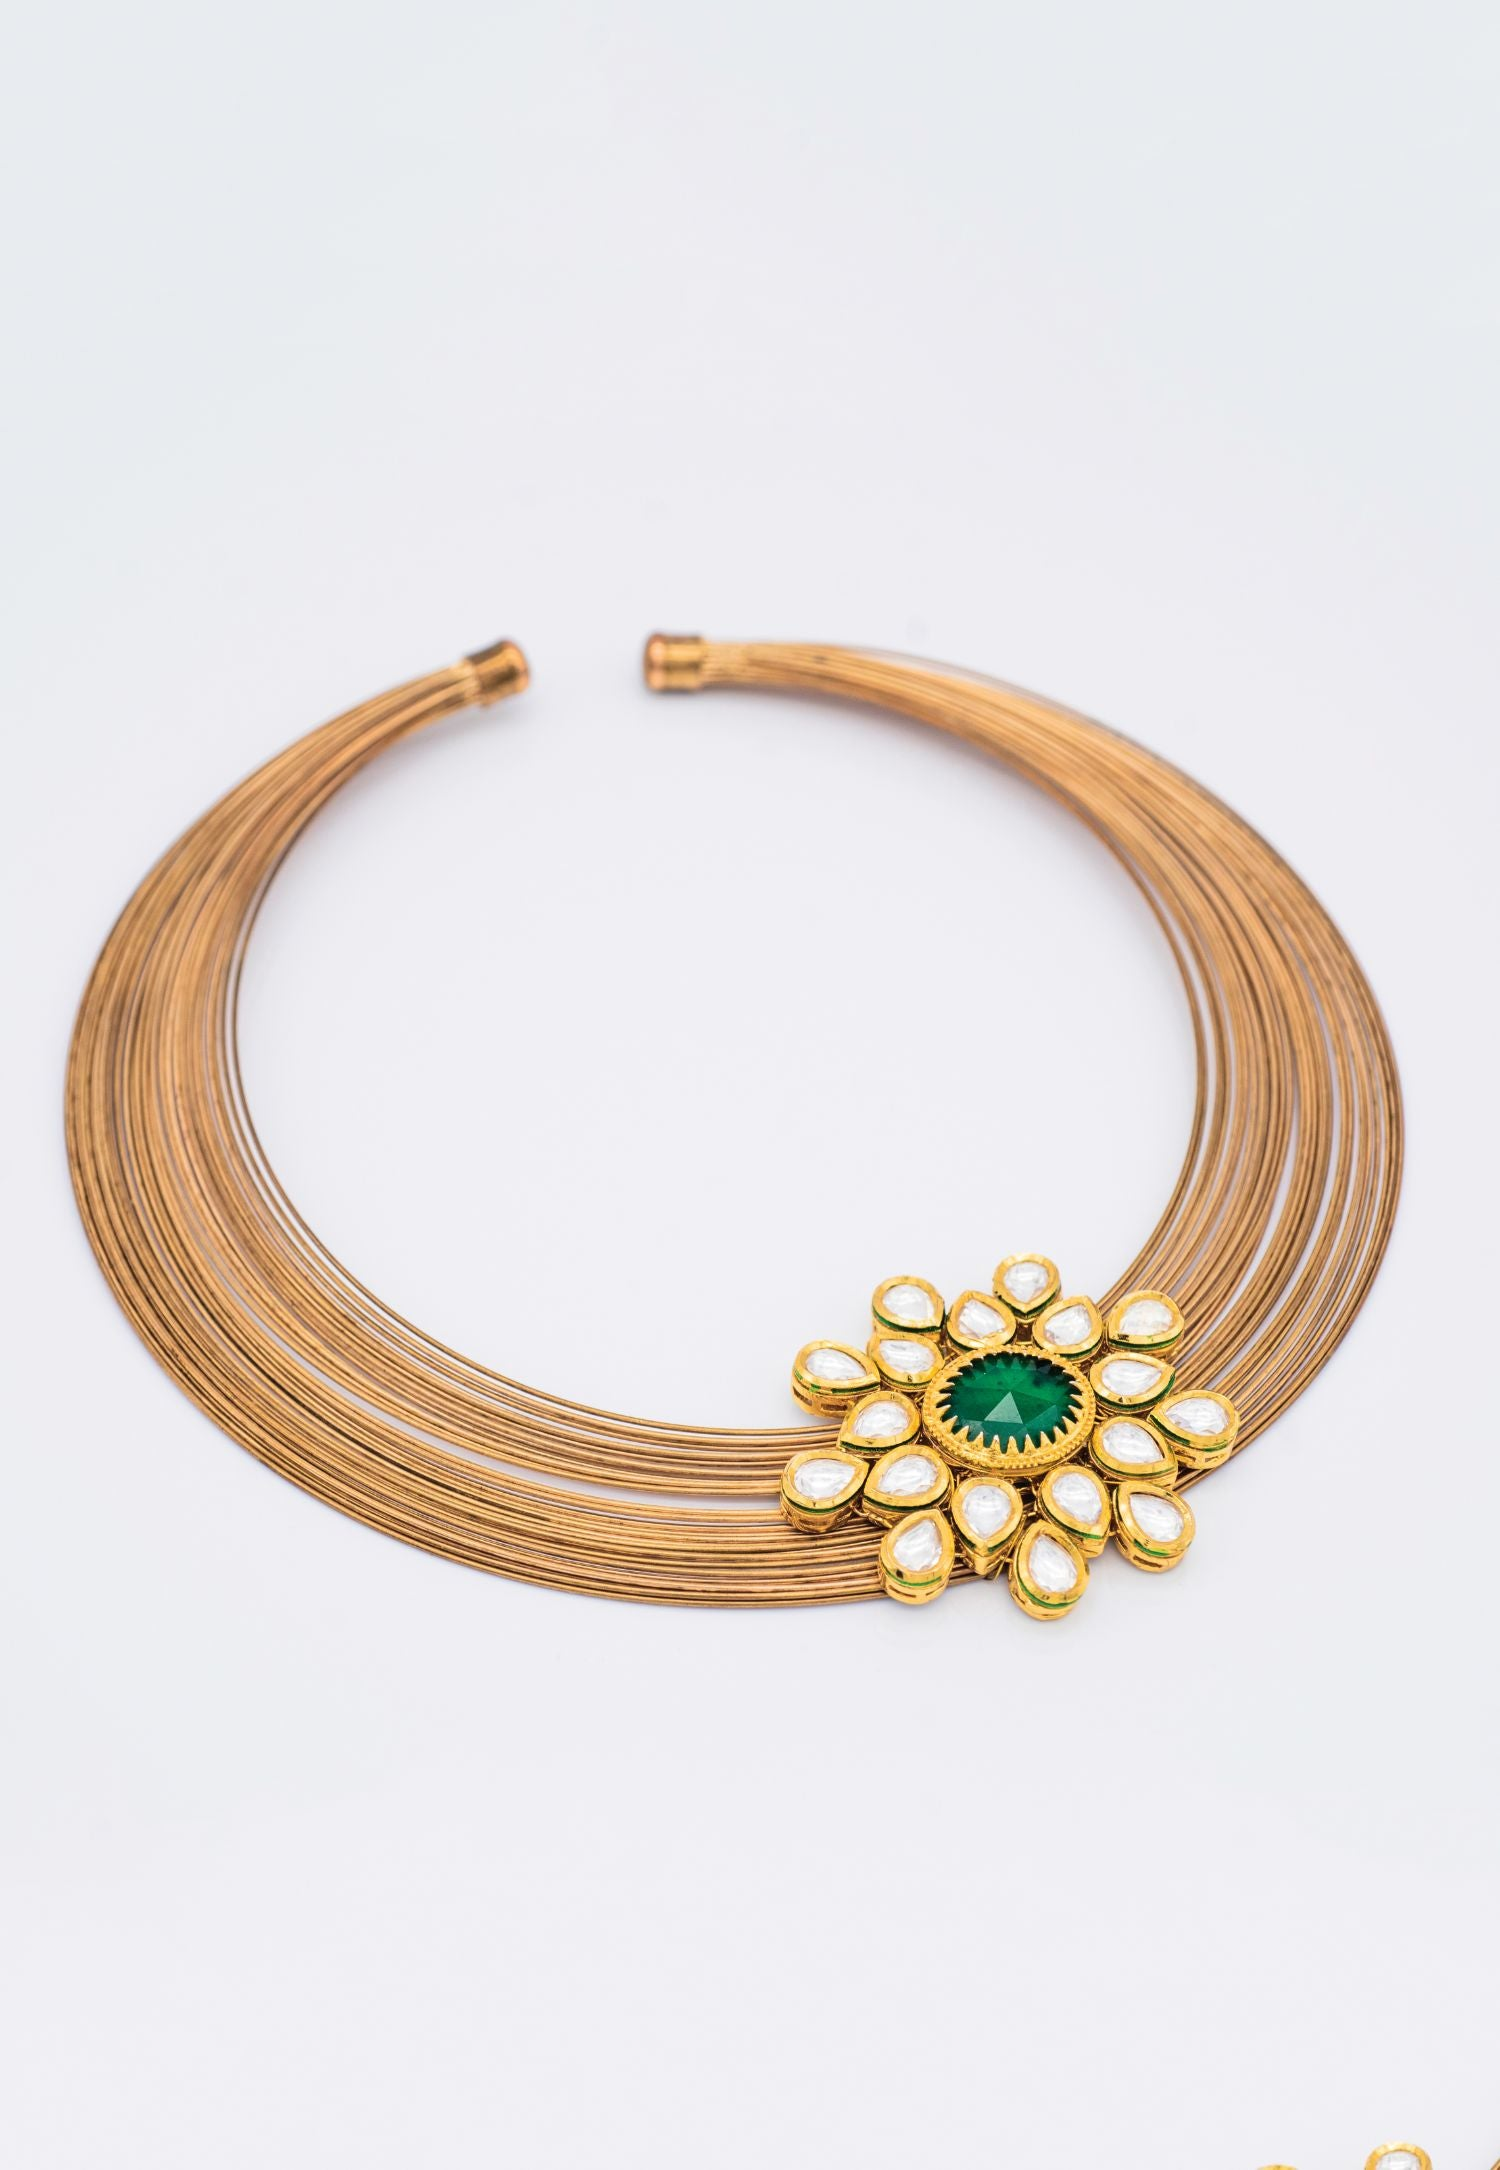 A GOLD FINISH CHOKER NECKLACE STUDDED WITH A KUNDAN PENDANT